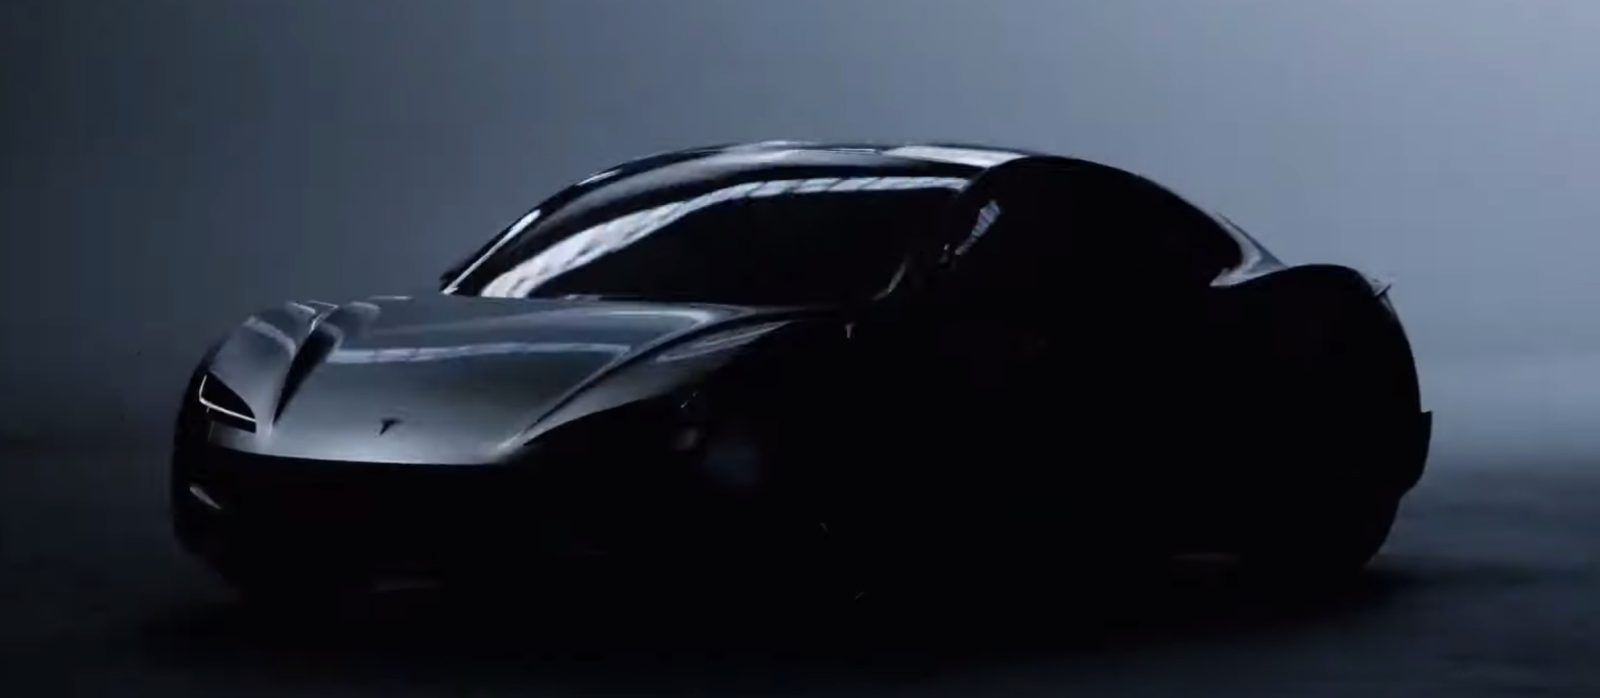 Tesla Roadster 2020 Spec Ad Will Get You Excited For The